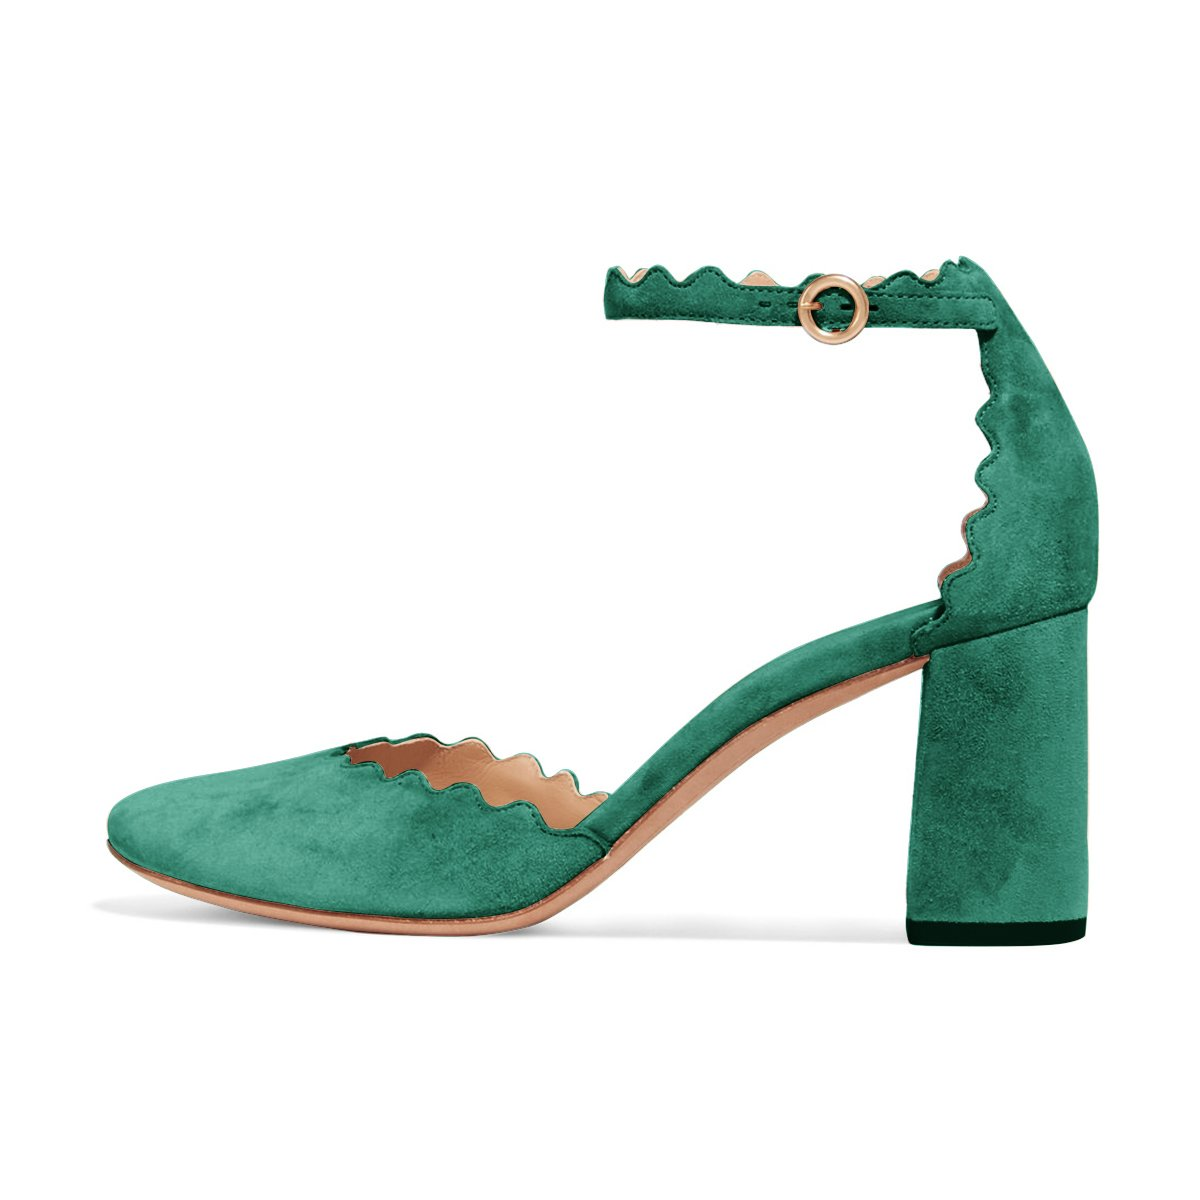 FSJ Women Comfortable Ankle Strap Pumps Block Chunky Heels Round Toe D'Orsay Shoes Size 4-15 US B078HSTBPV 11 M US|Turquoise